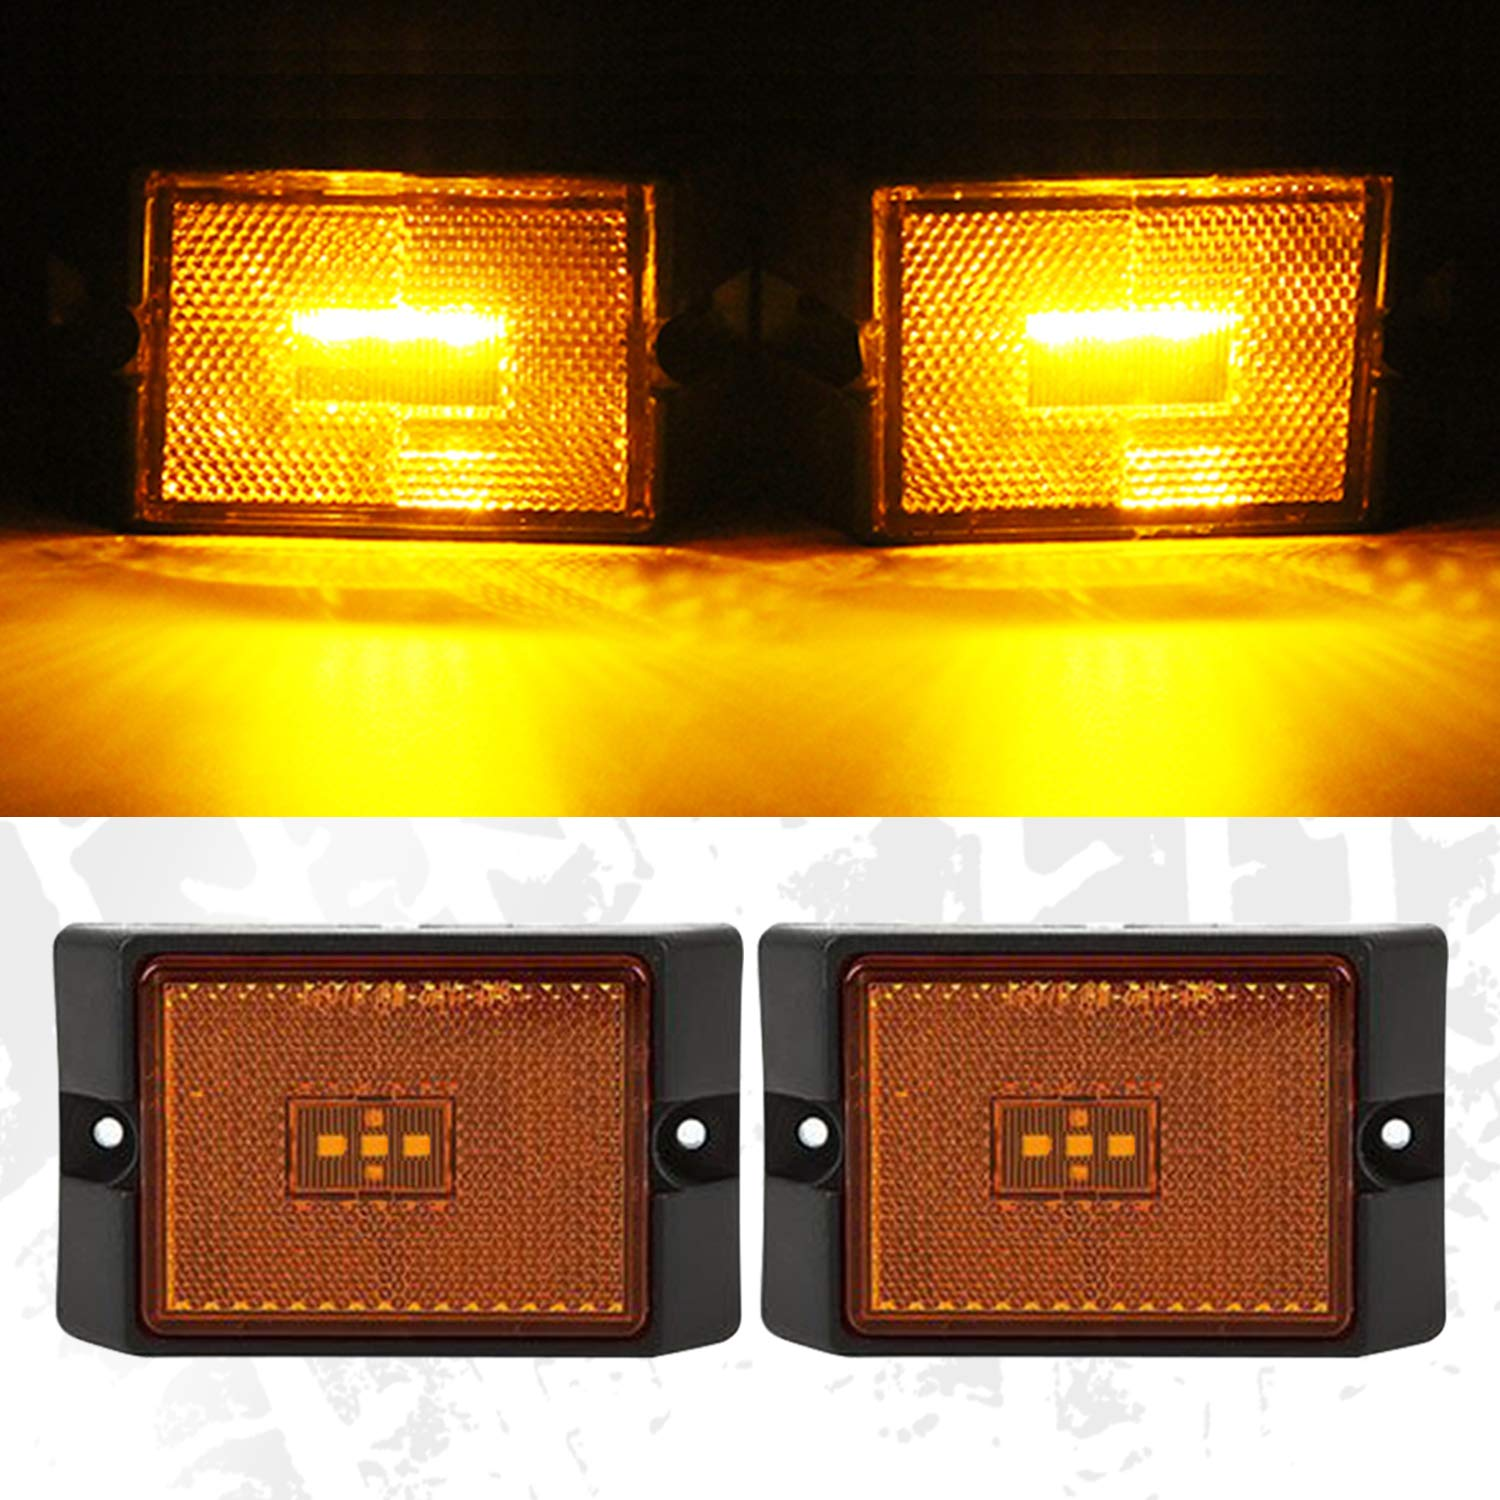 Led Trailer Light Kit Together With Wiring Nisuns Submersible Tail Lights Waterproof 12v Harness Combination Brake